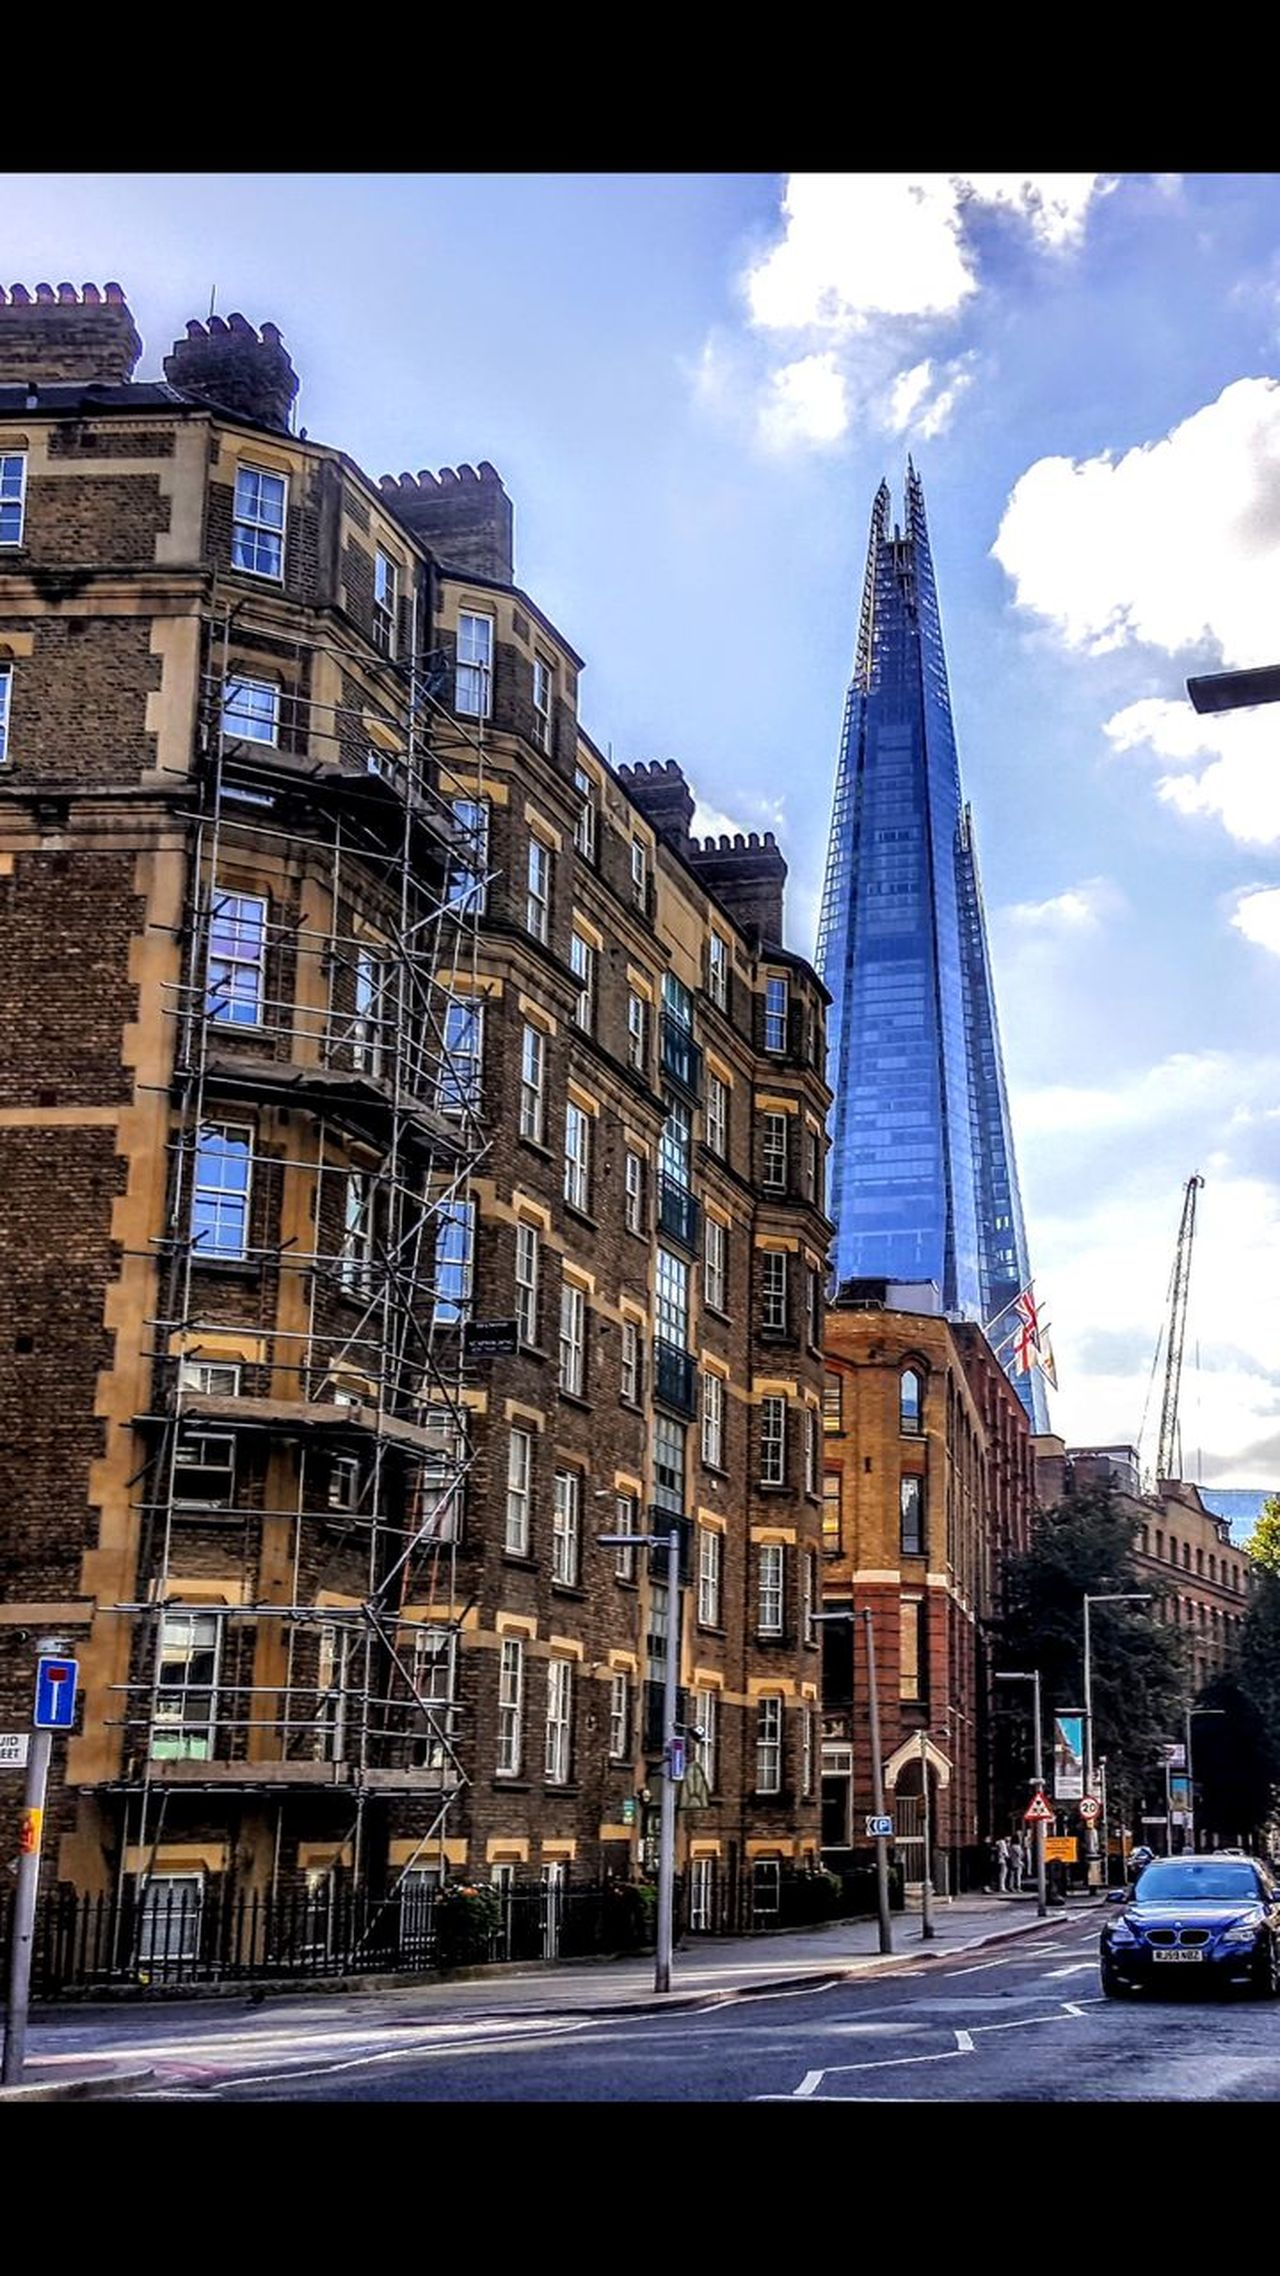 Tower Business Finance And Industry Architecture Sky City Building - Activity Built Structure Building Exterior Day Outdoors Cityscape No People London LONDON❤ London Streets Tranquil Scene Facebook Page Friends ❤ Travel Destinations Relaxing Reflection Londononly London's Buildings London Photography London Life